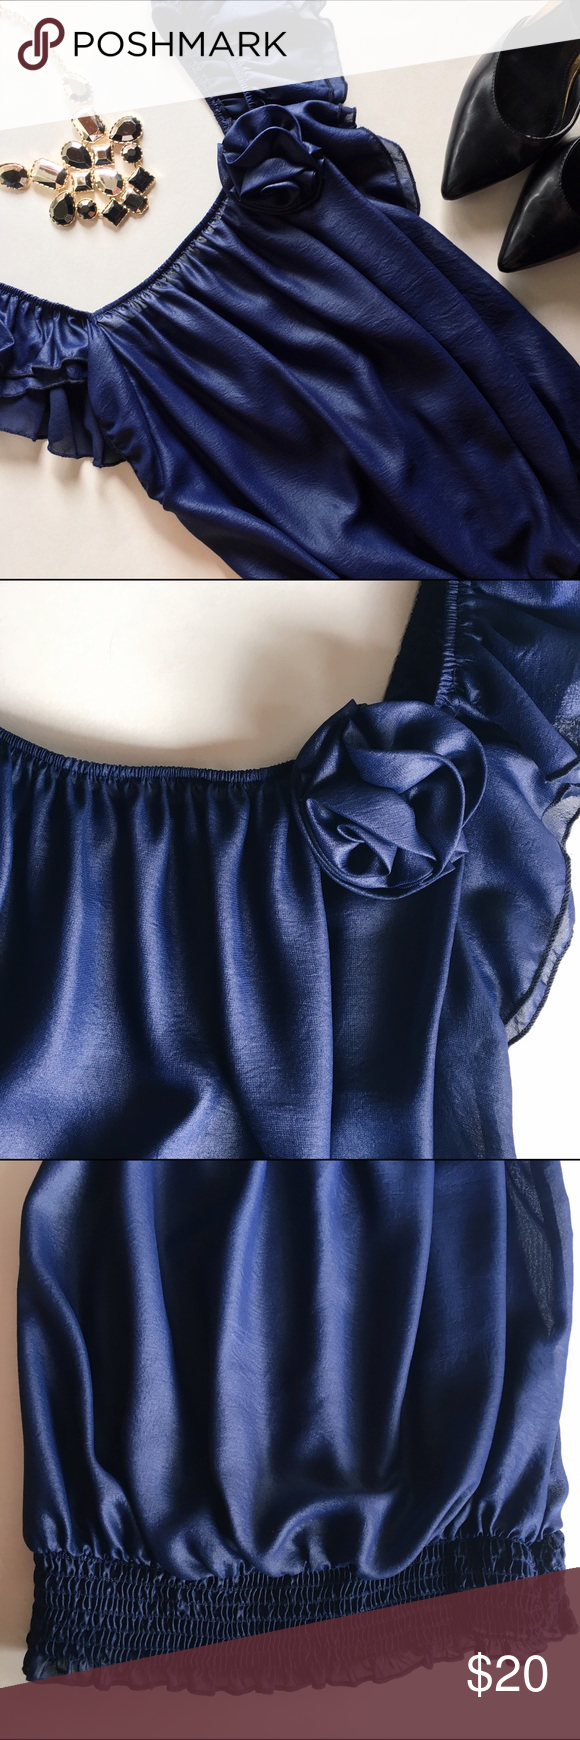 A'Gaci Navy blue off-the-shoulder blouse Super light and comfortable navy blue top with a rose detail. Can be worn off-the-shoulder. Tight at the bottom. Perfect to dress up with a skirt or wear with jeans. Lightly worn. 100% polyester a'gaci Tops Blouses